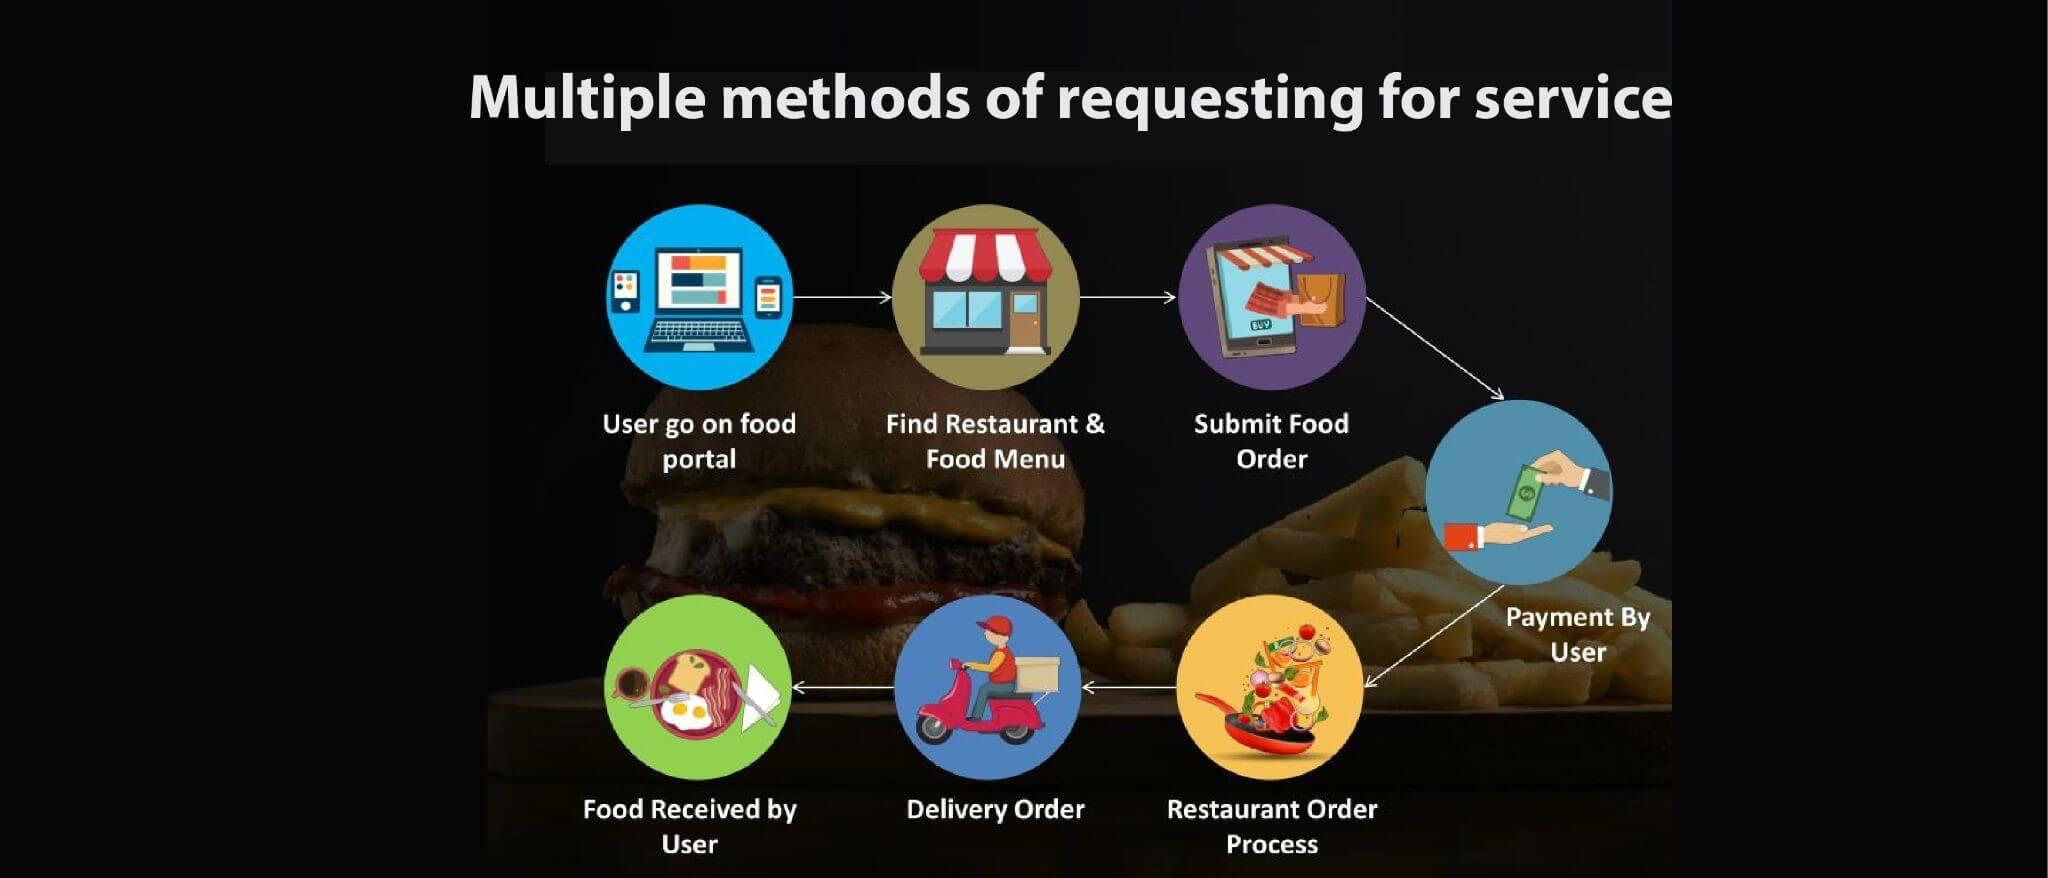 Multiple methods of requesting for service